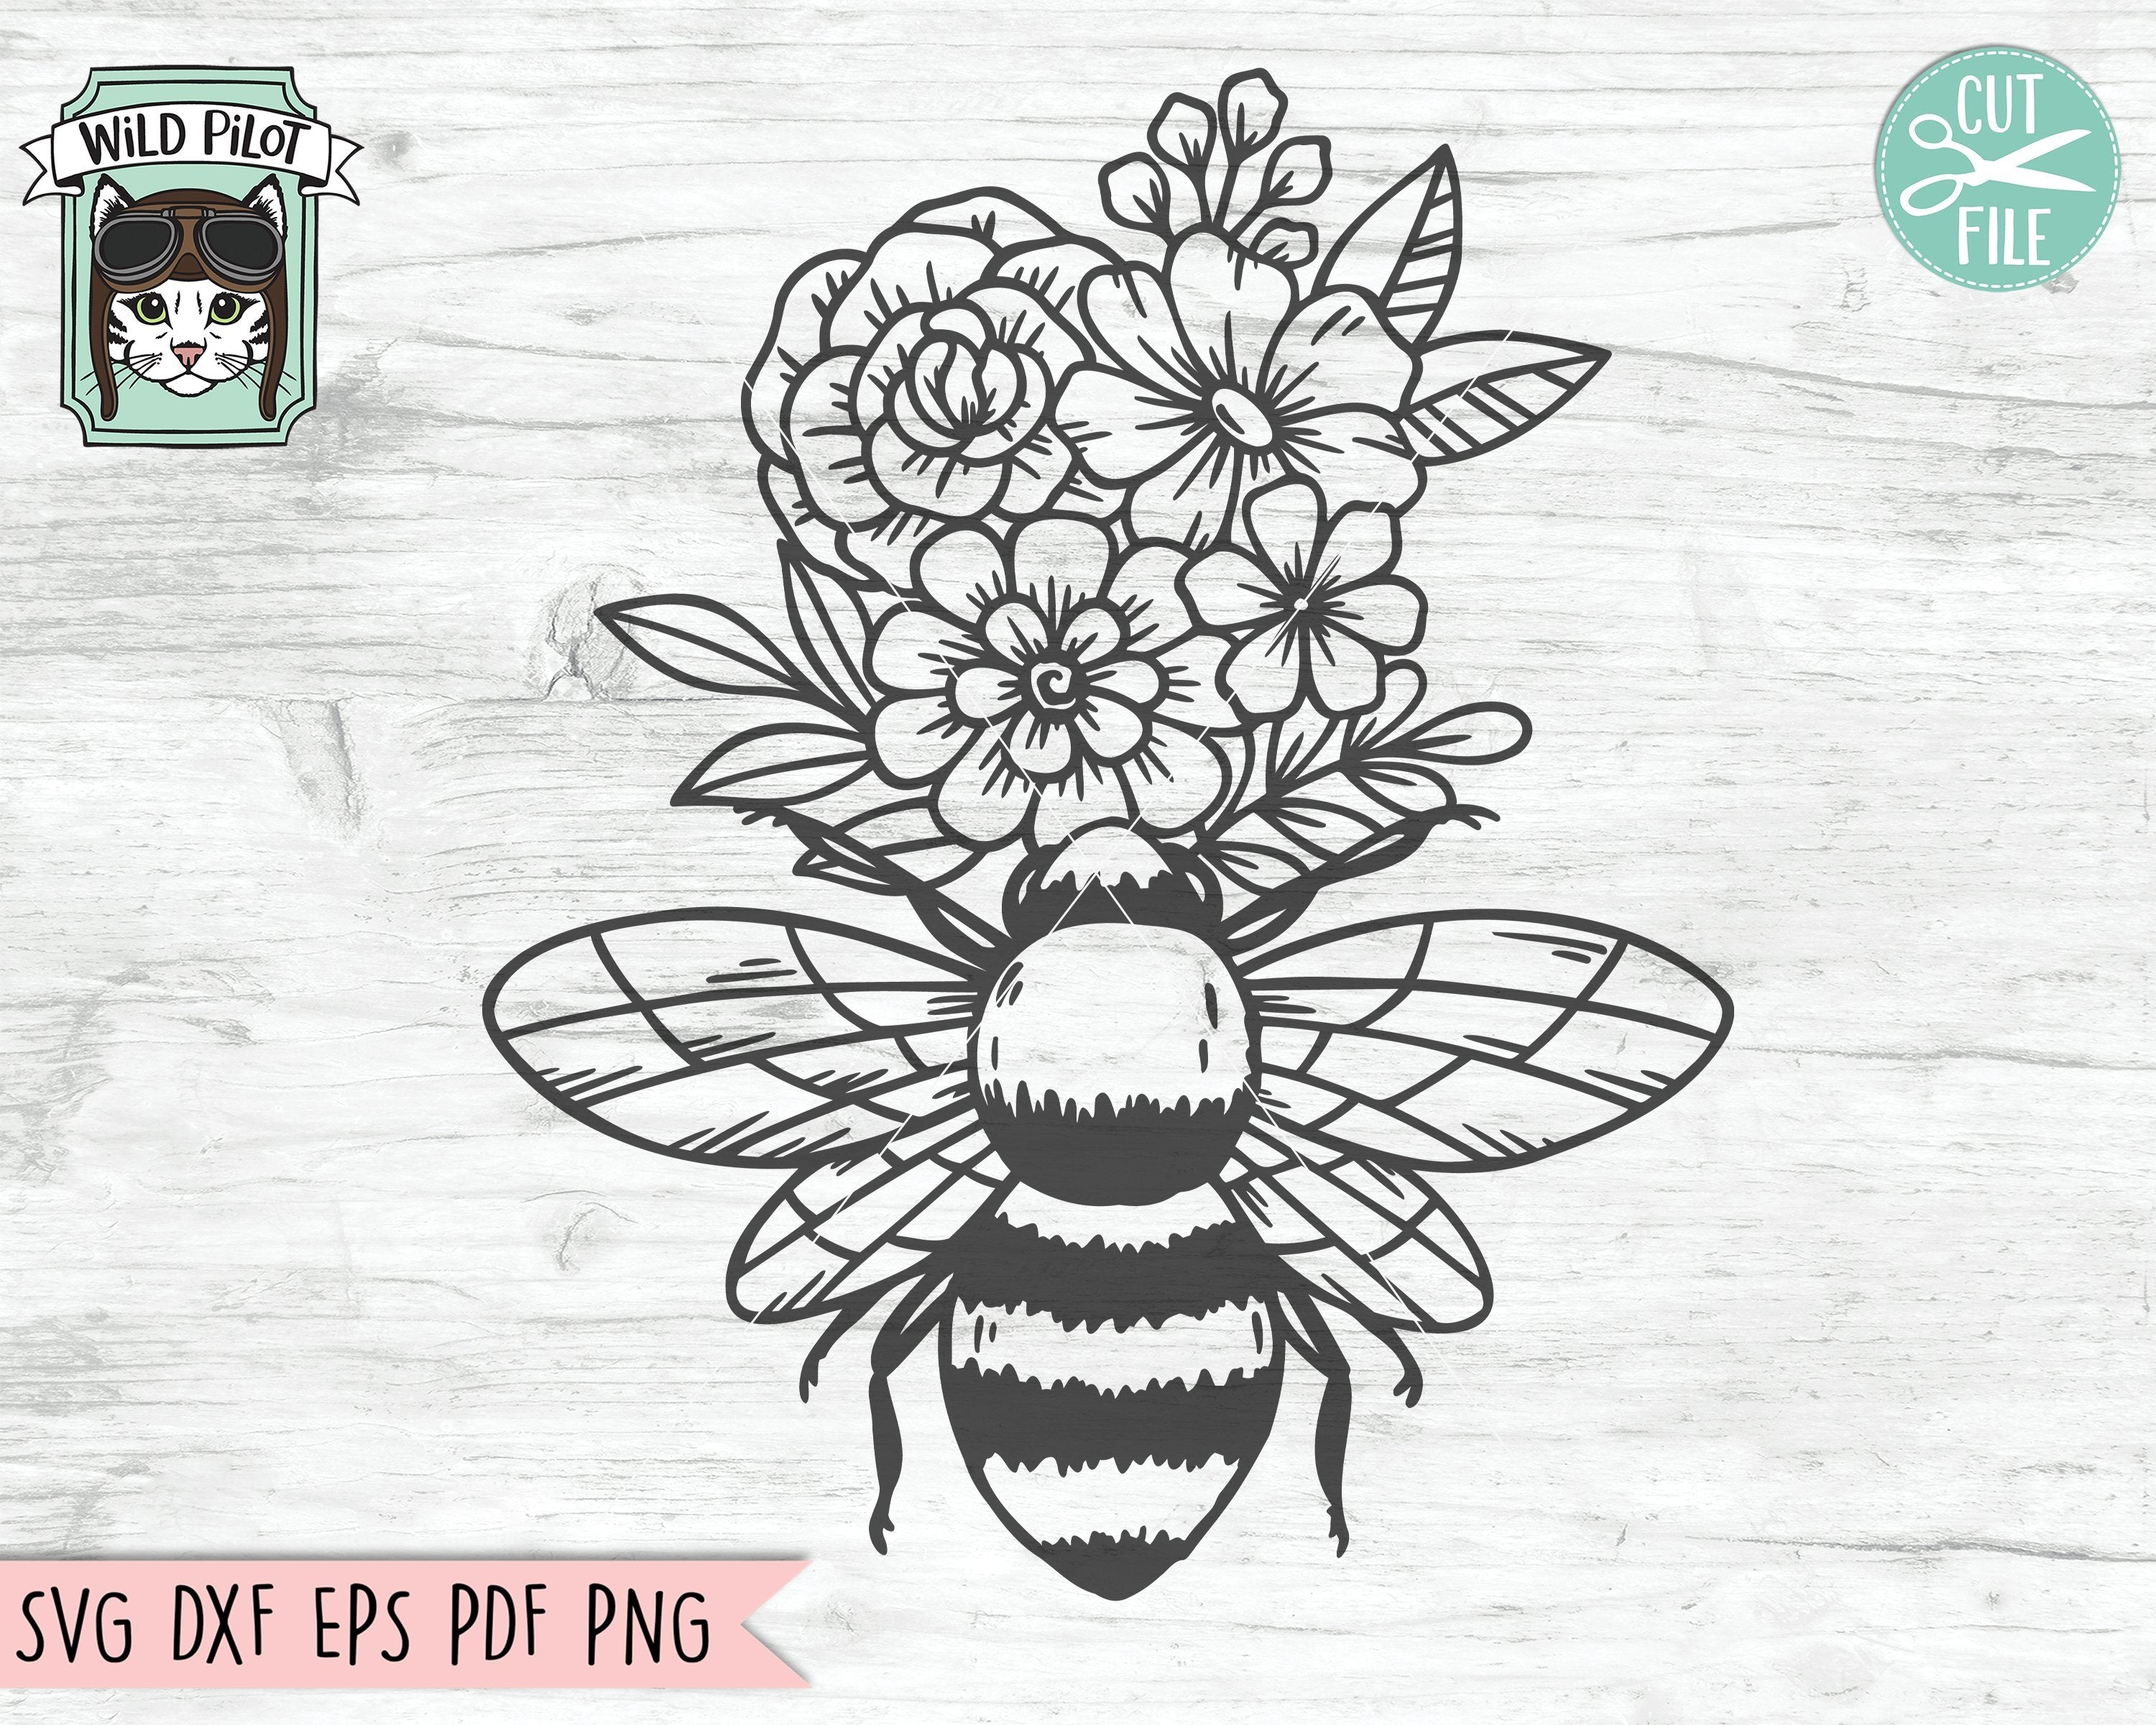 Flower Bee Svg Floral Bee Svg File Save The Bees Svg Bee Kind Svg Bee Happy Svg Bee Kind Floral Cut File Floral Bee Svg Cut File Honey Bee Svg So